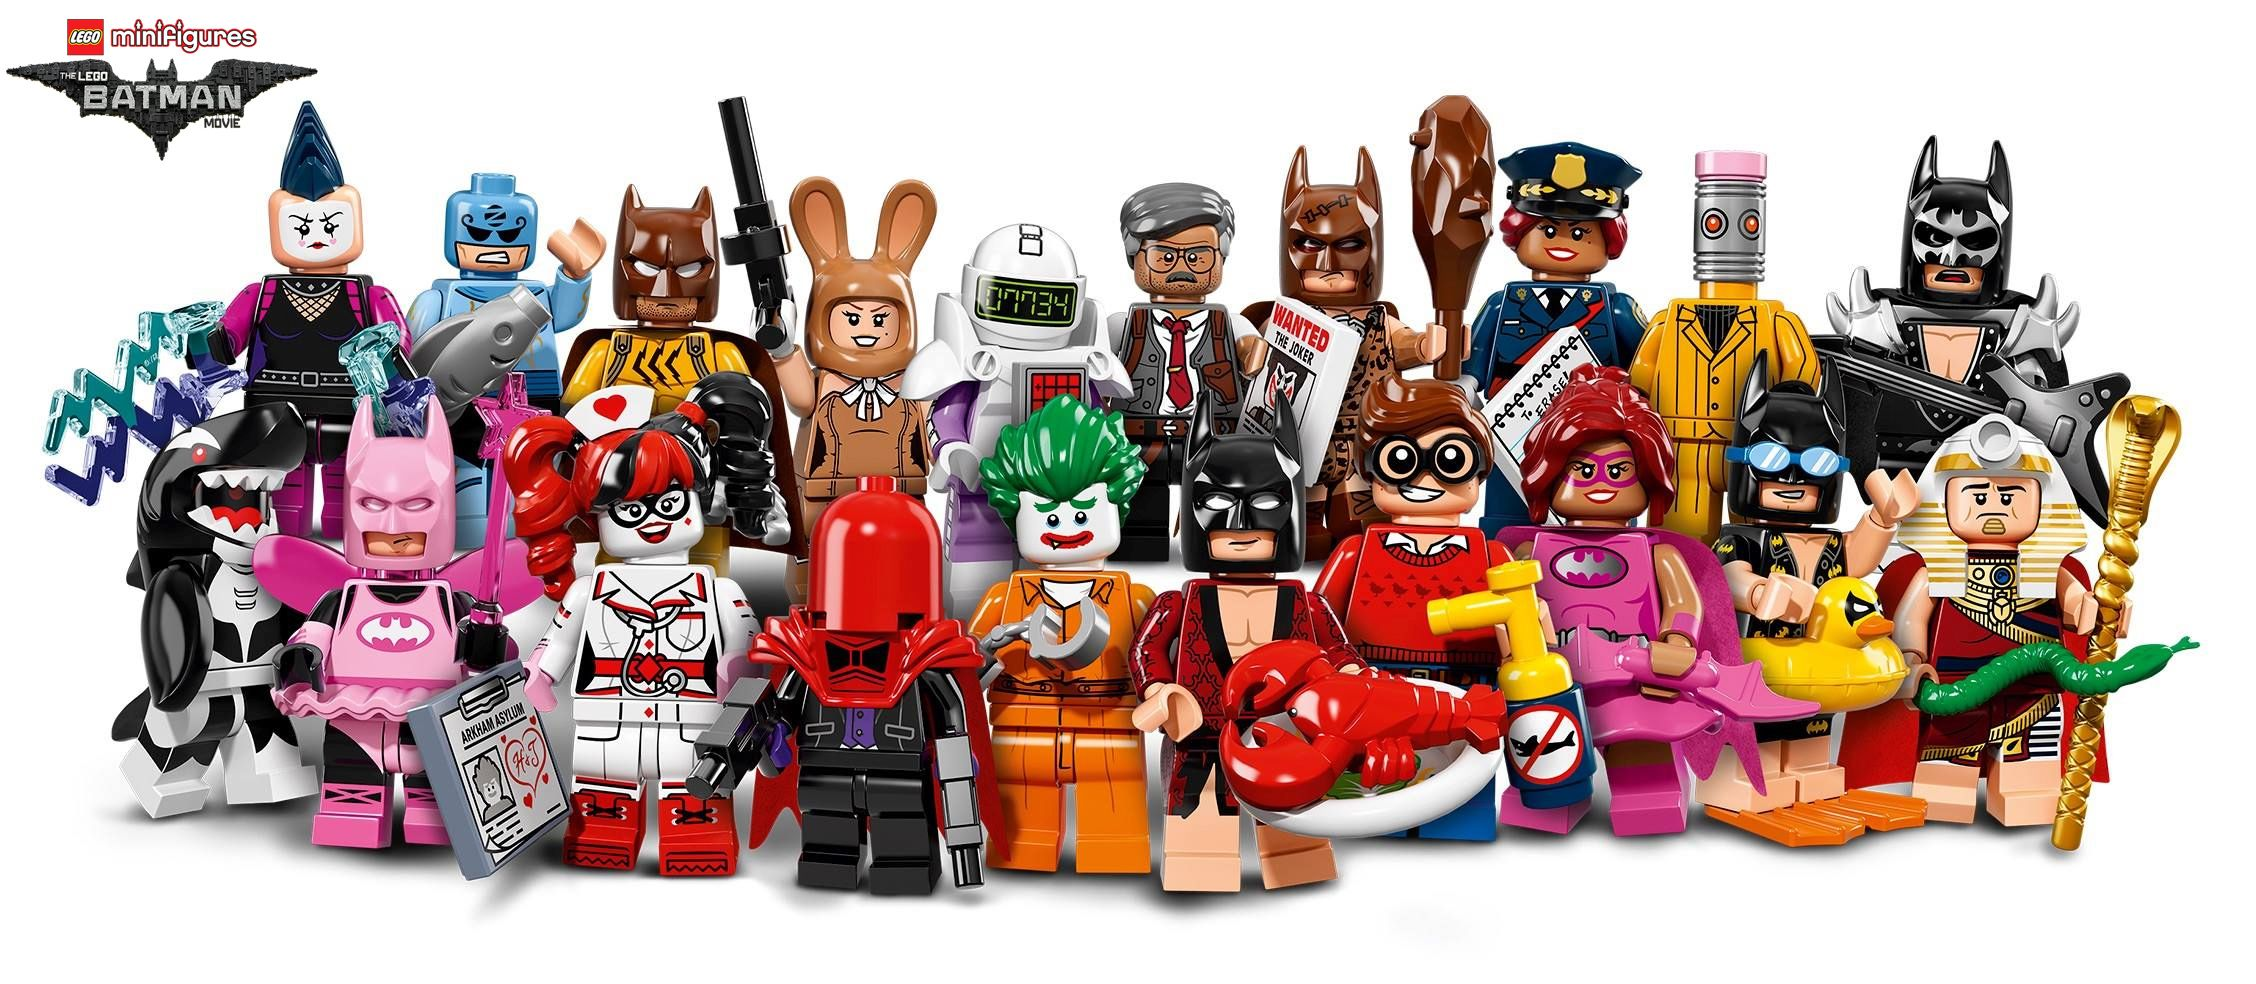 LEGO-Minifigures-Lego-Batman-Movie-Series-11